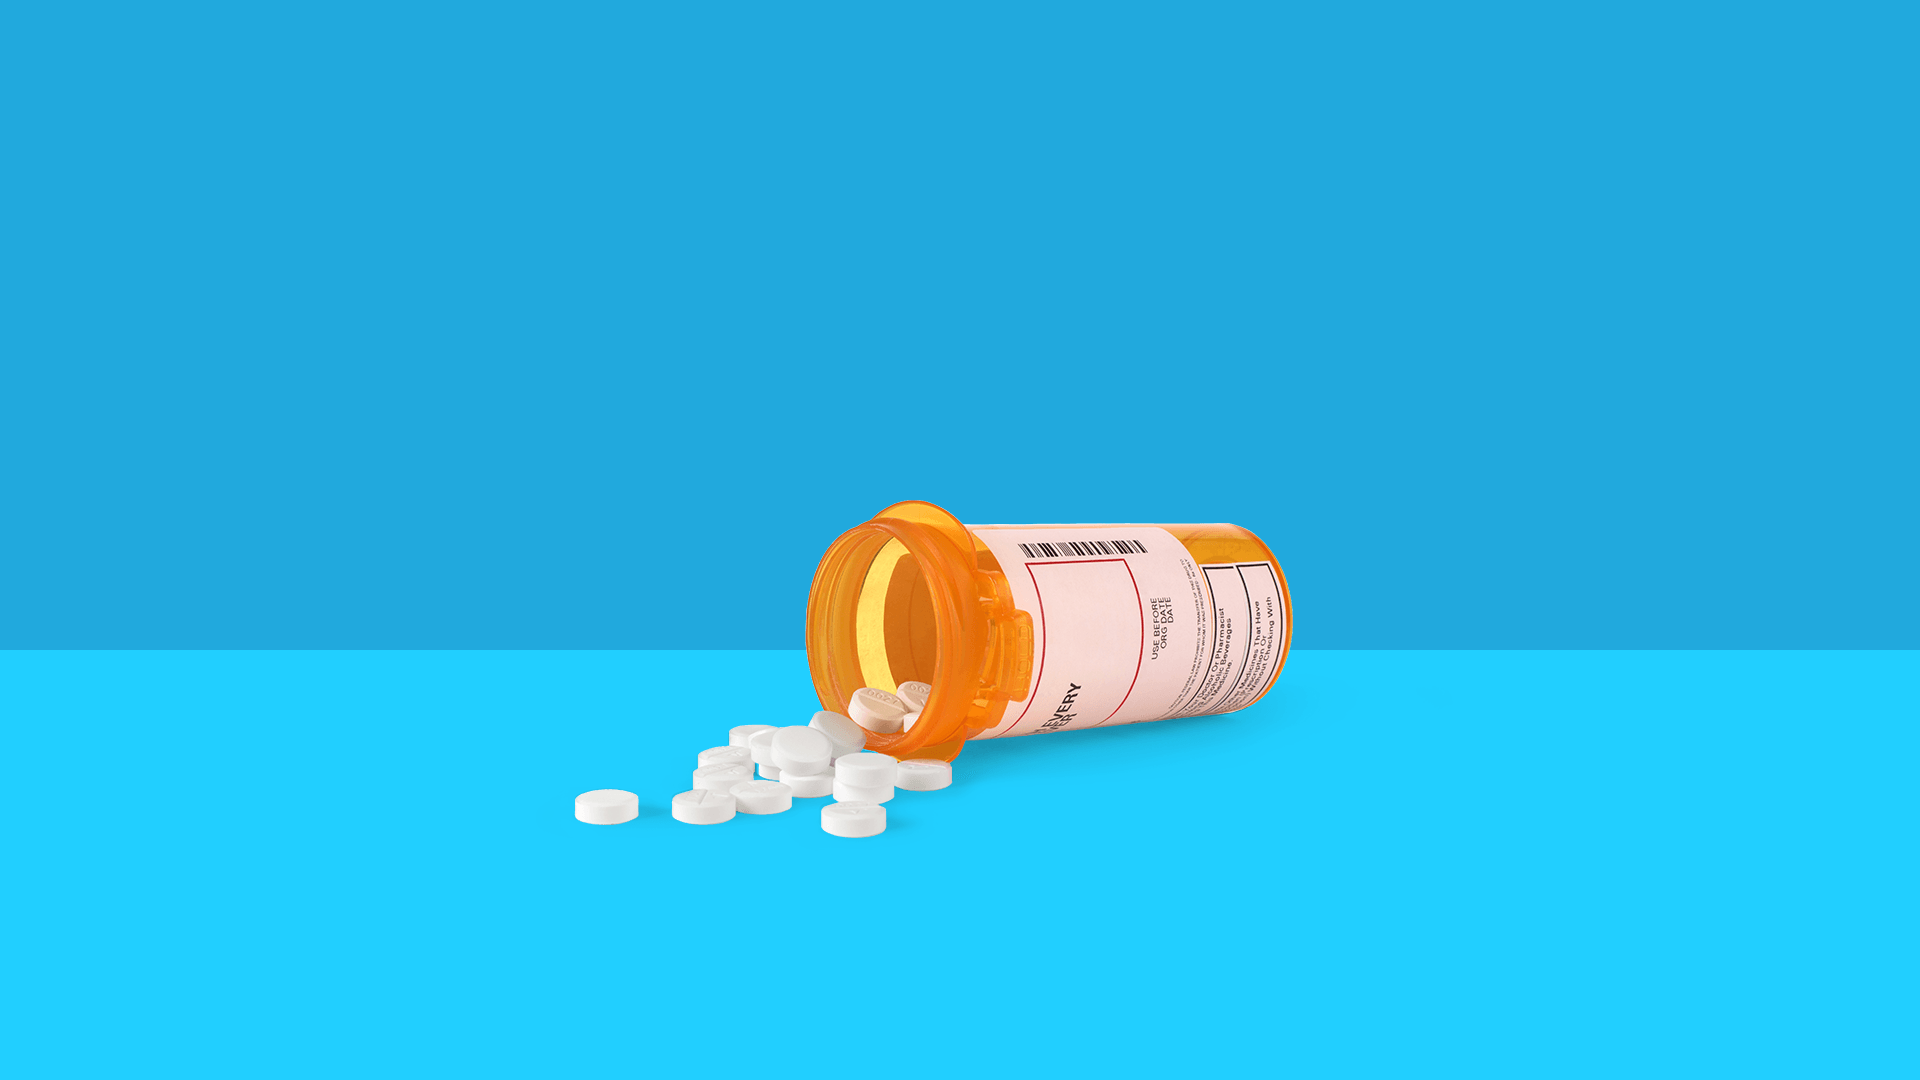 Cialis dosage, forms, and strengths